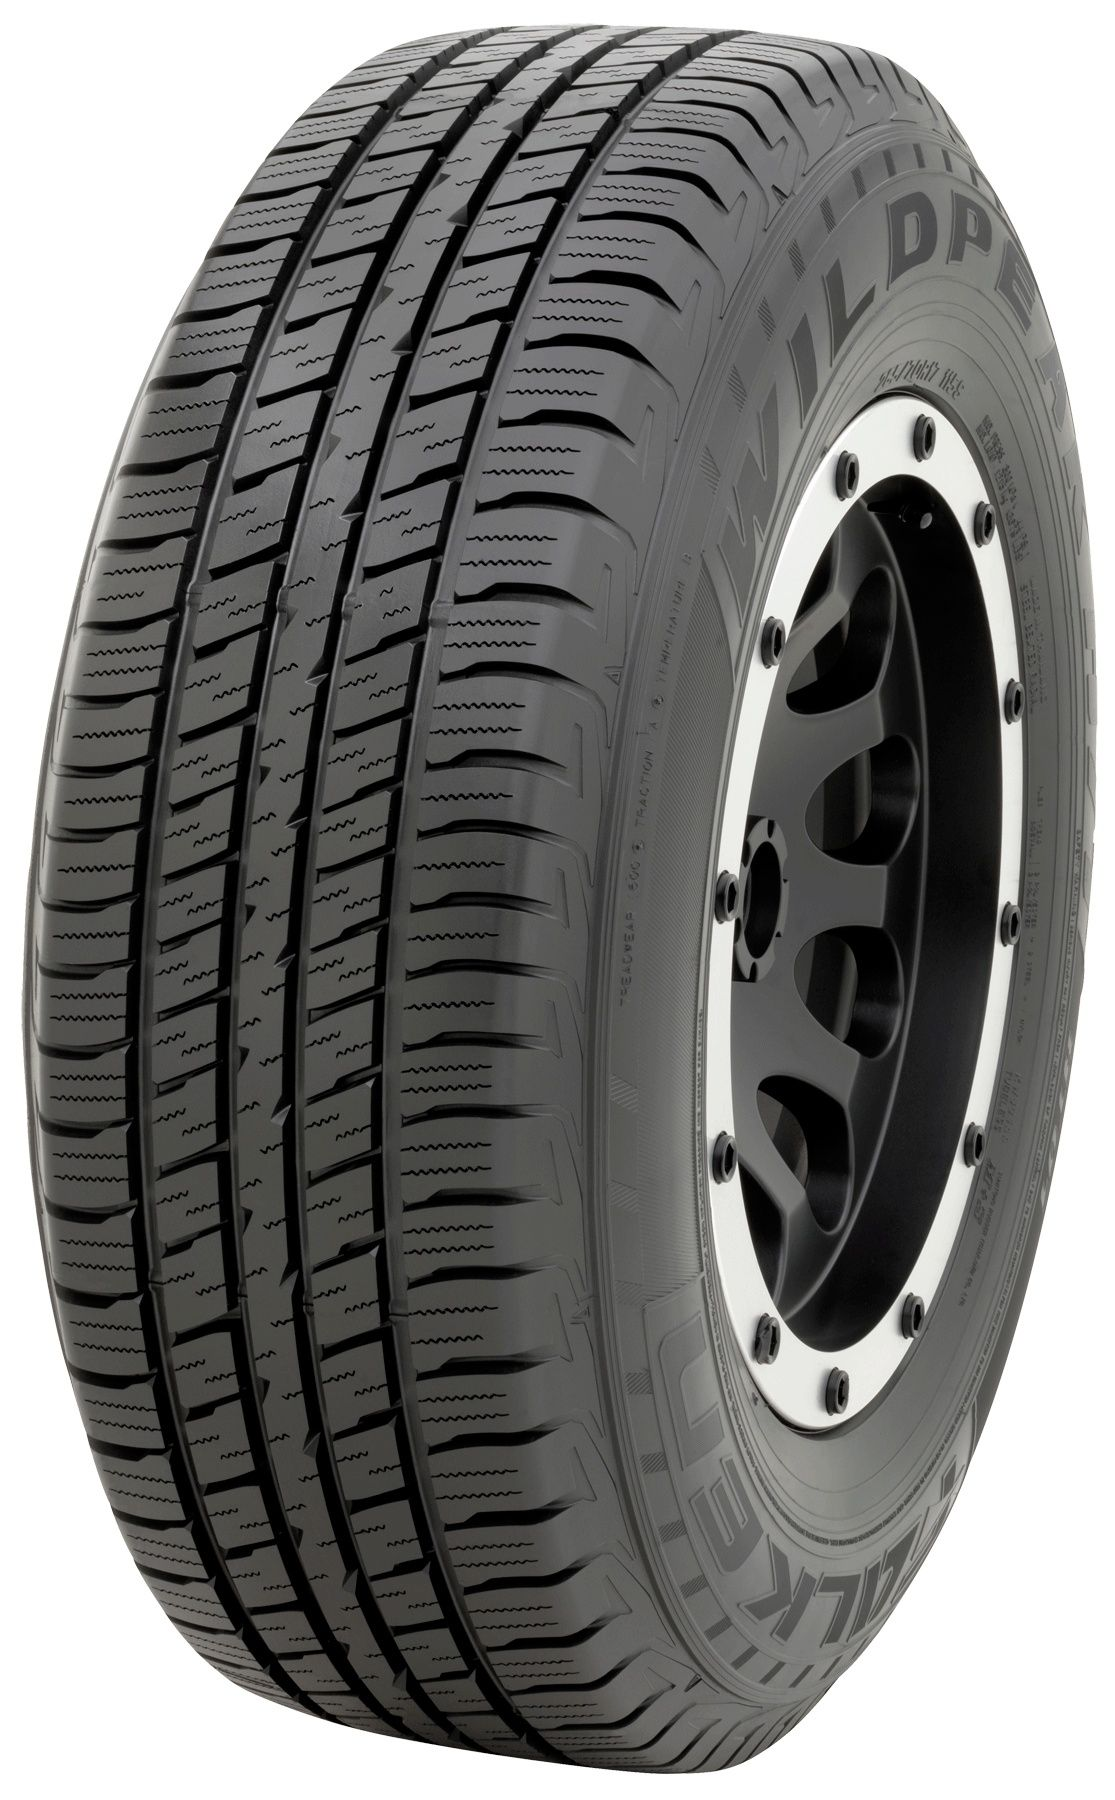 Falken Wild Peak H/T - 265/70R17 121/118S OWL - All-Season LT Tire 265-70-17